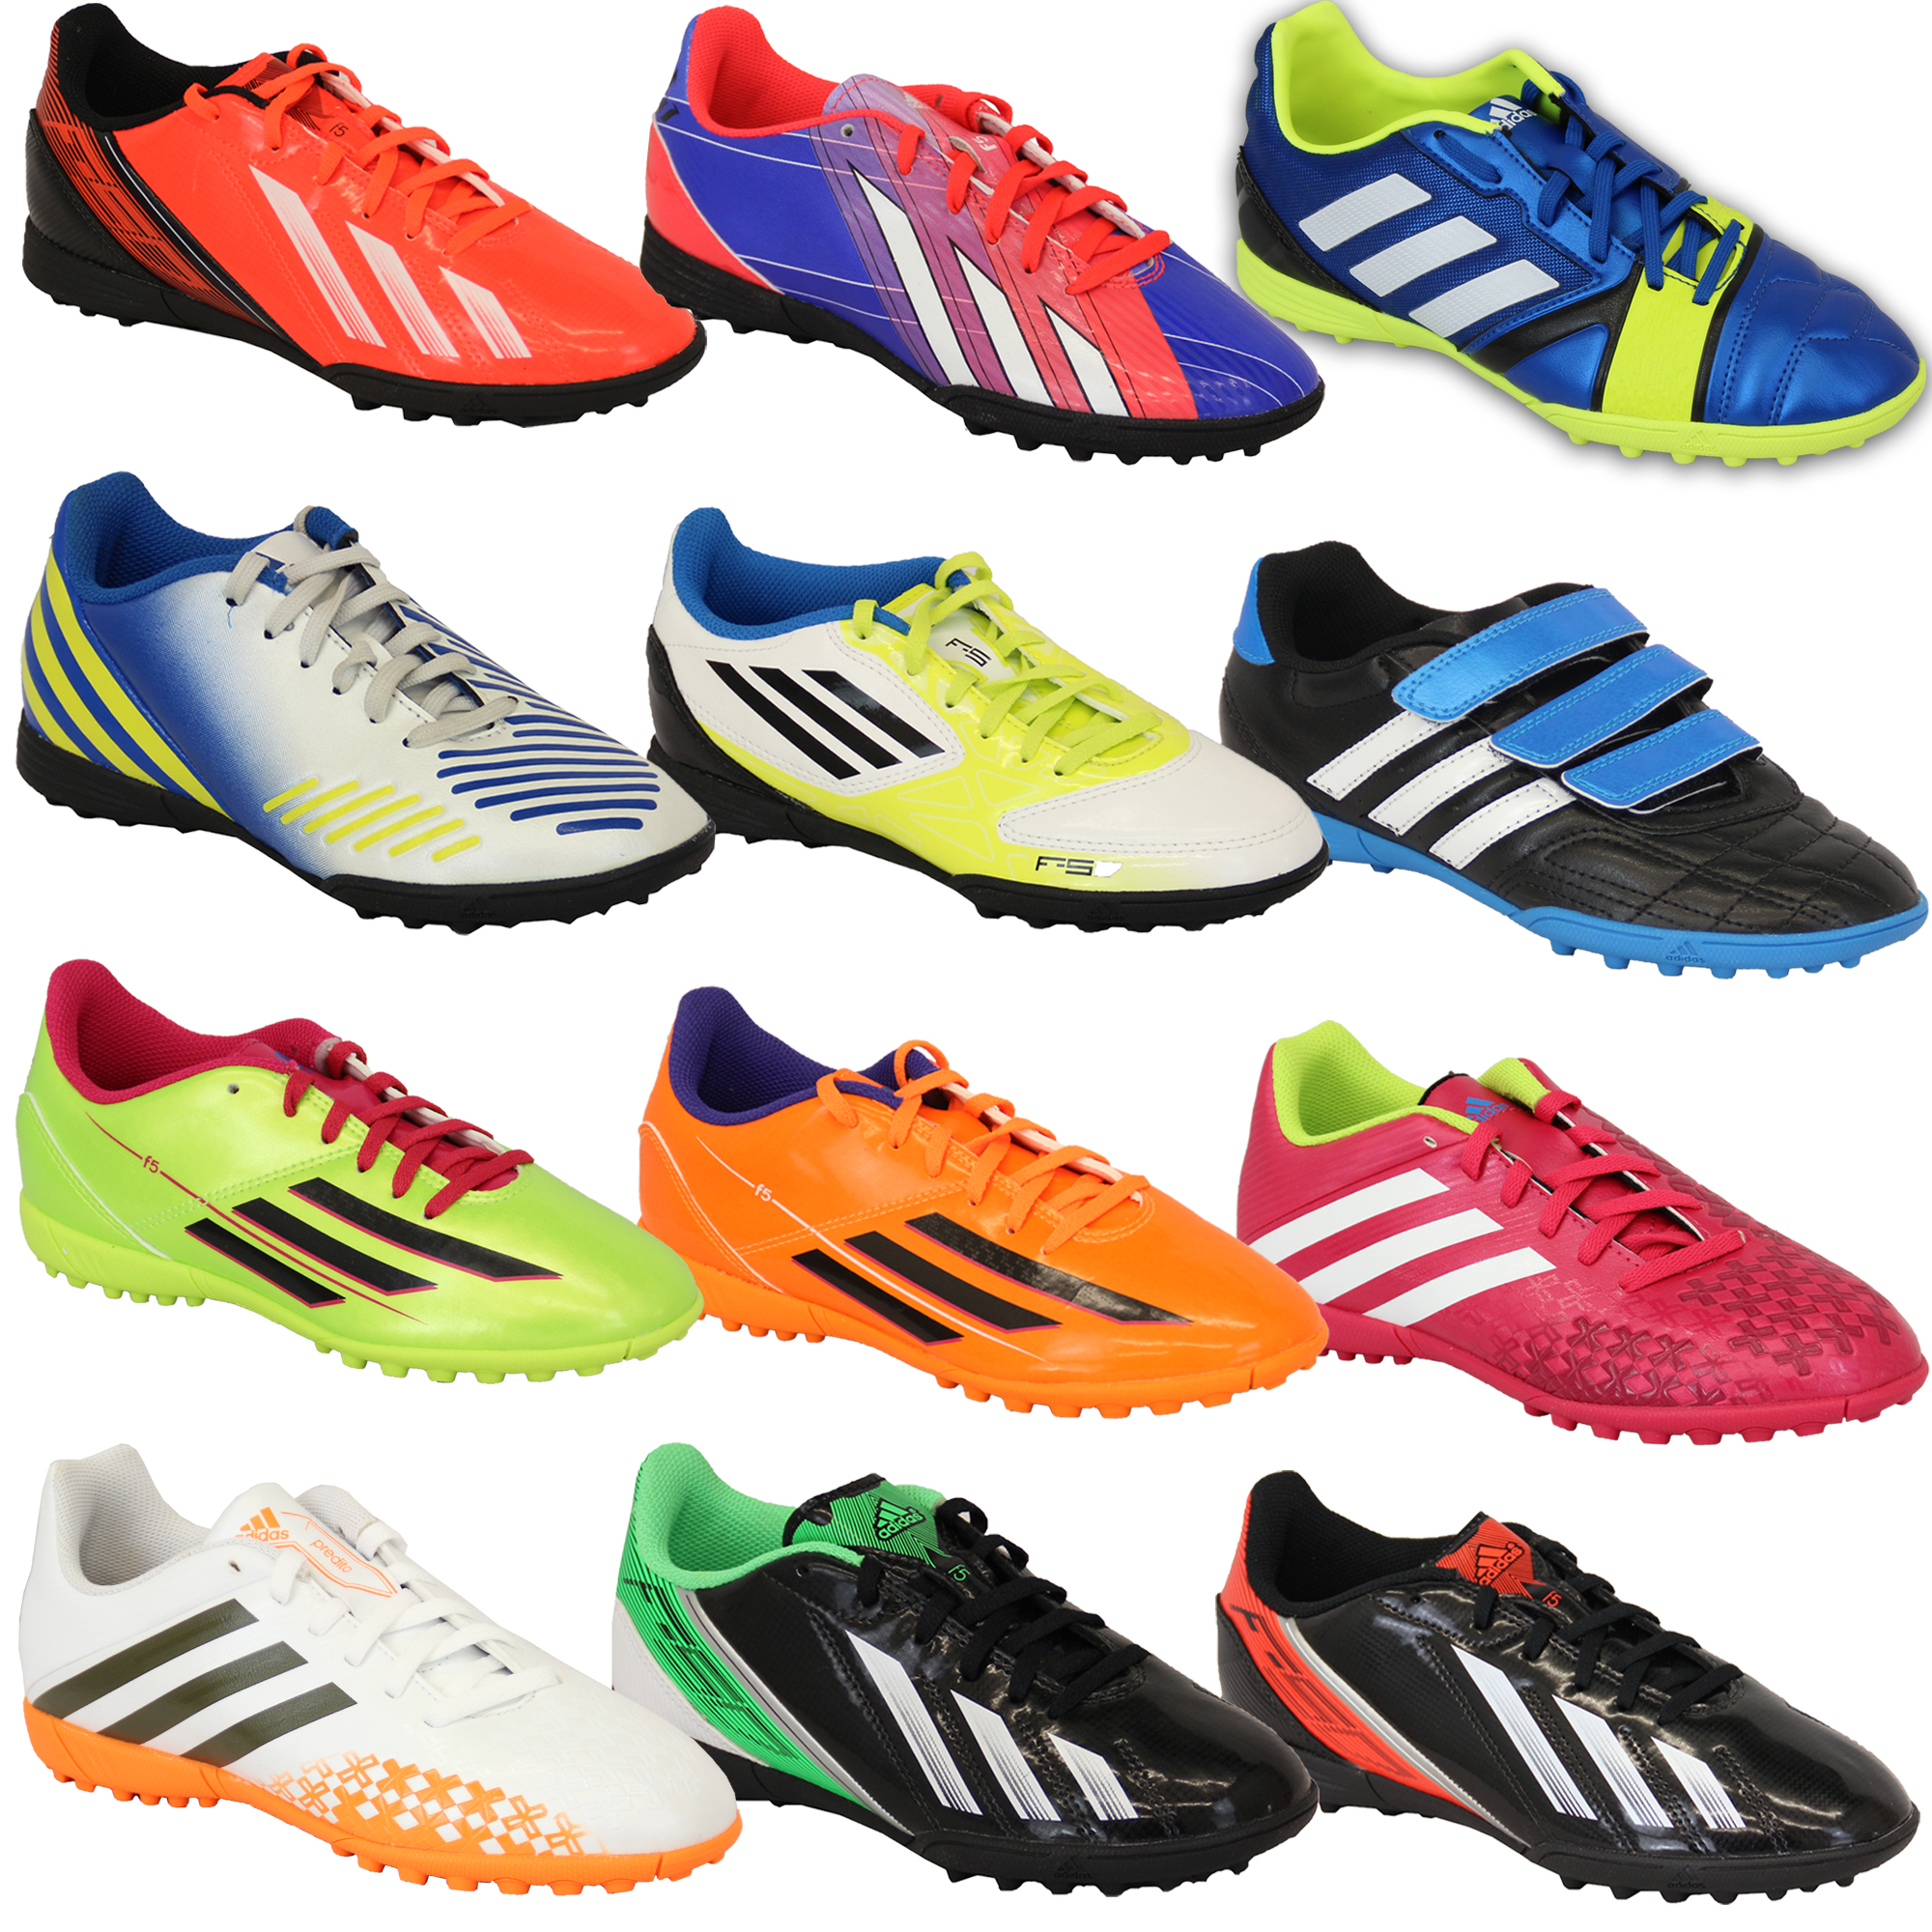 Boys-ADIDAS-Trainers-Kids-Football-Soccer-Astro-Turf-Shoes-Lace-Up-Neon-Youth thumbnail 15